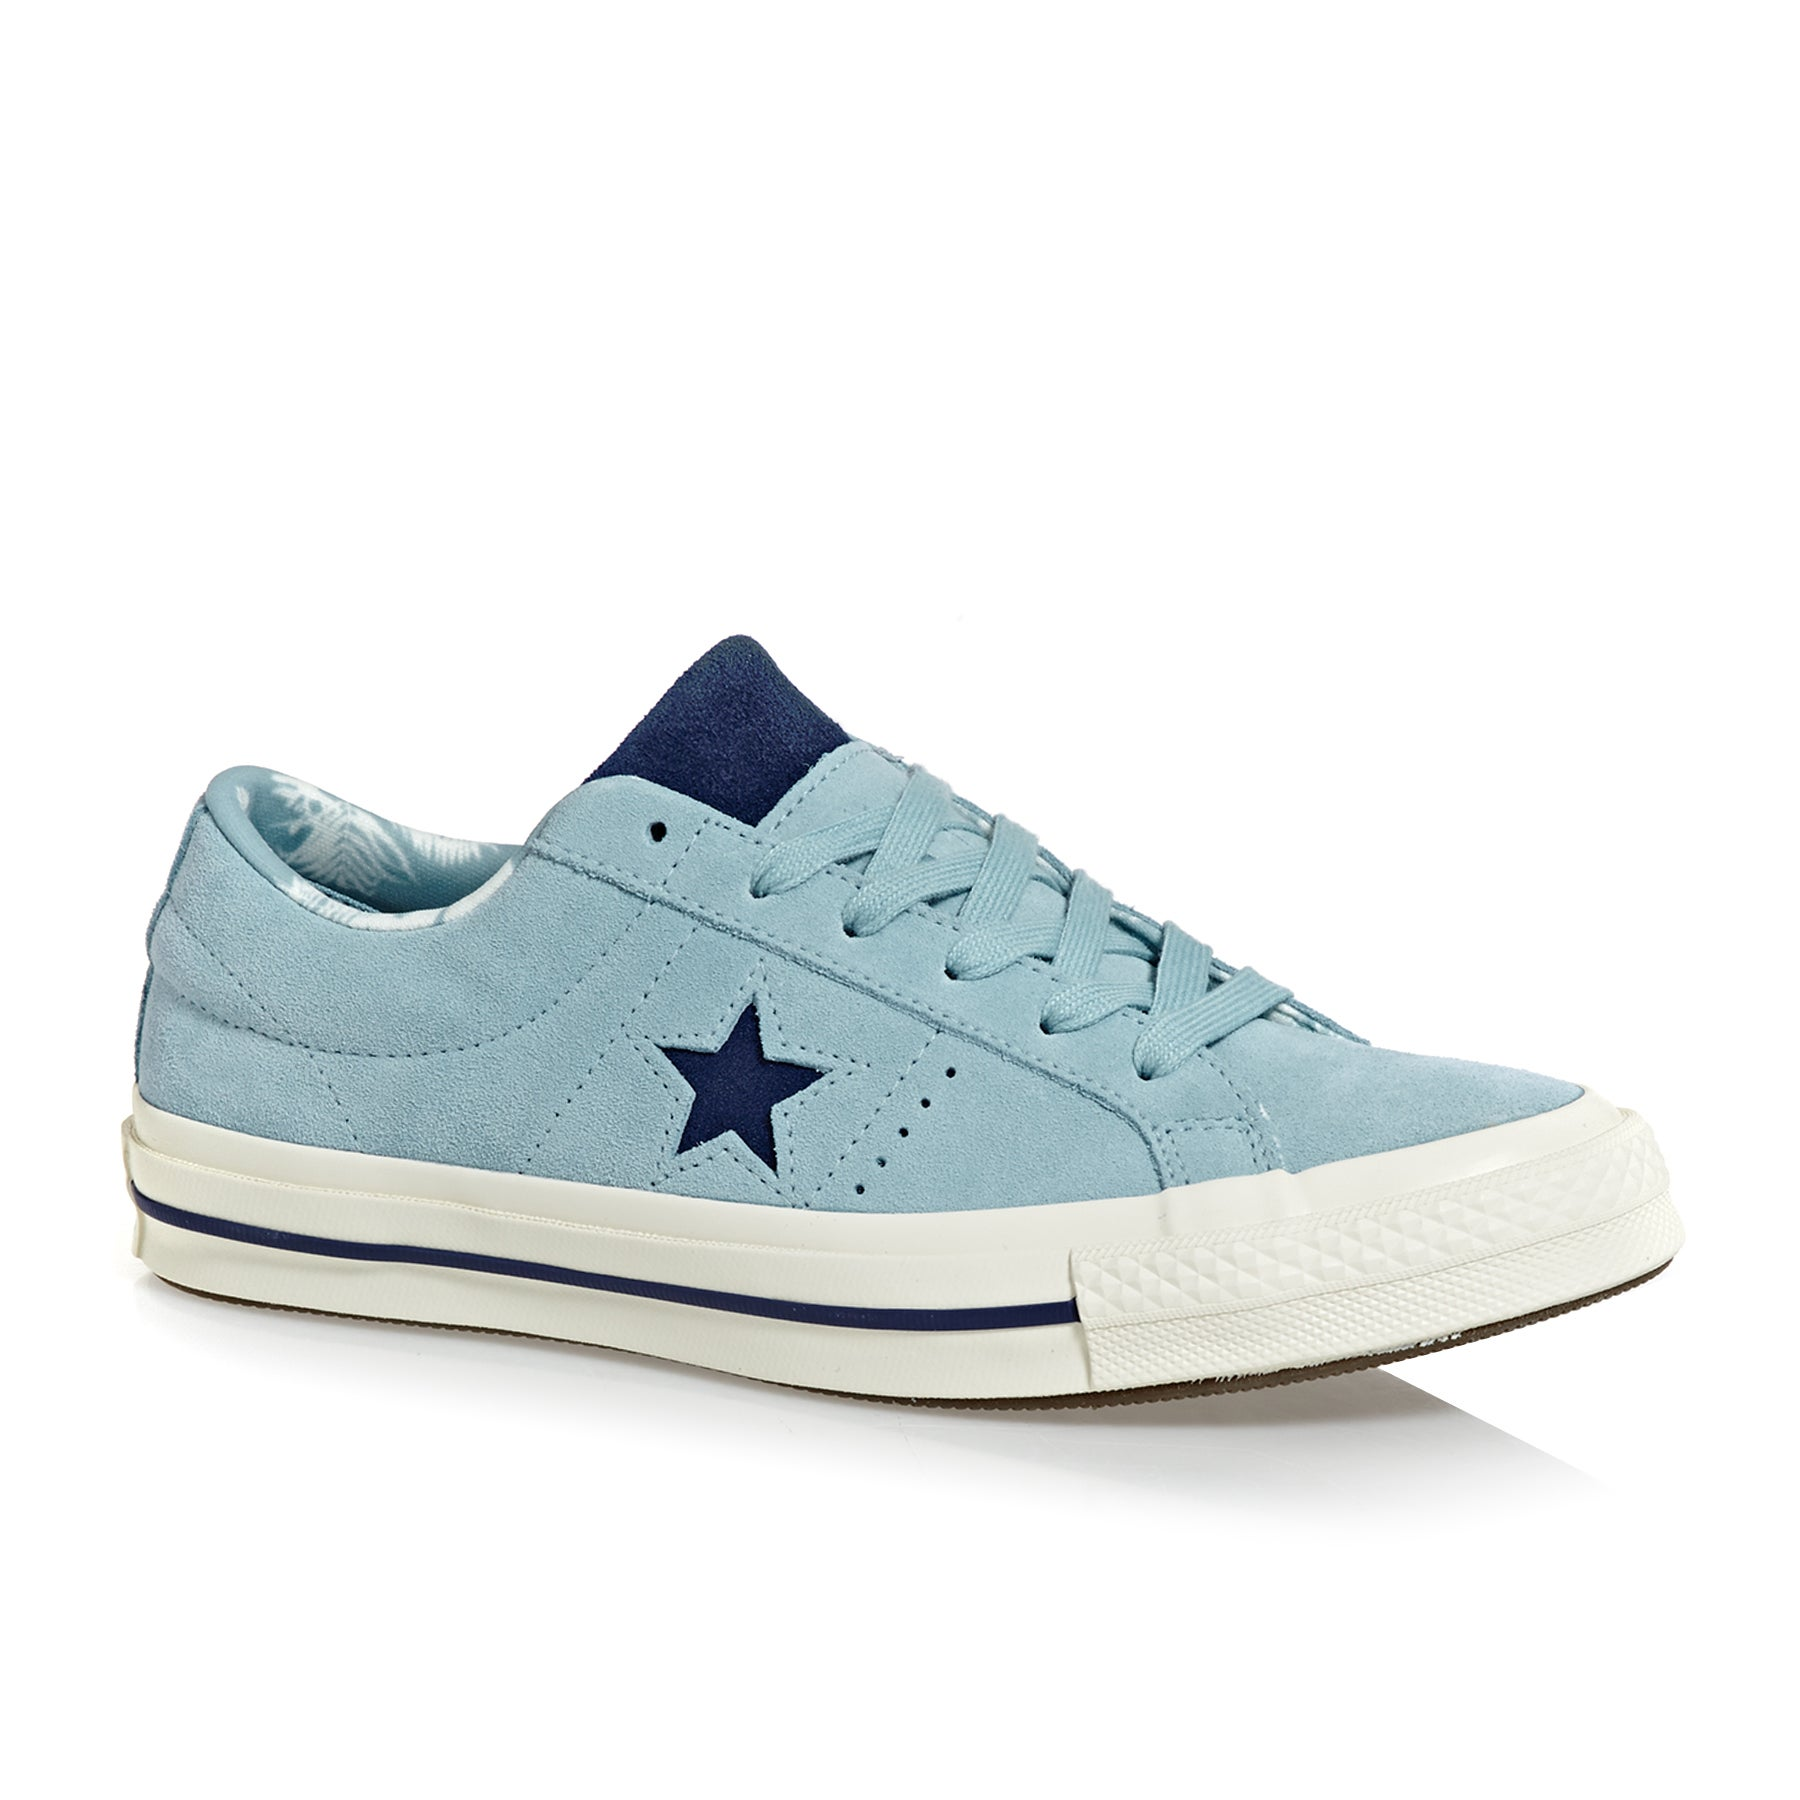 Converse One Star Ox Shoes